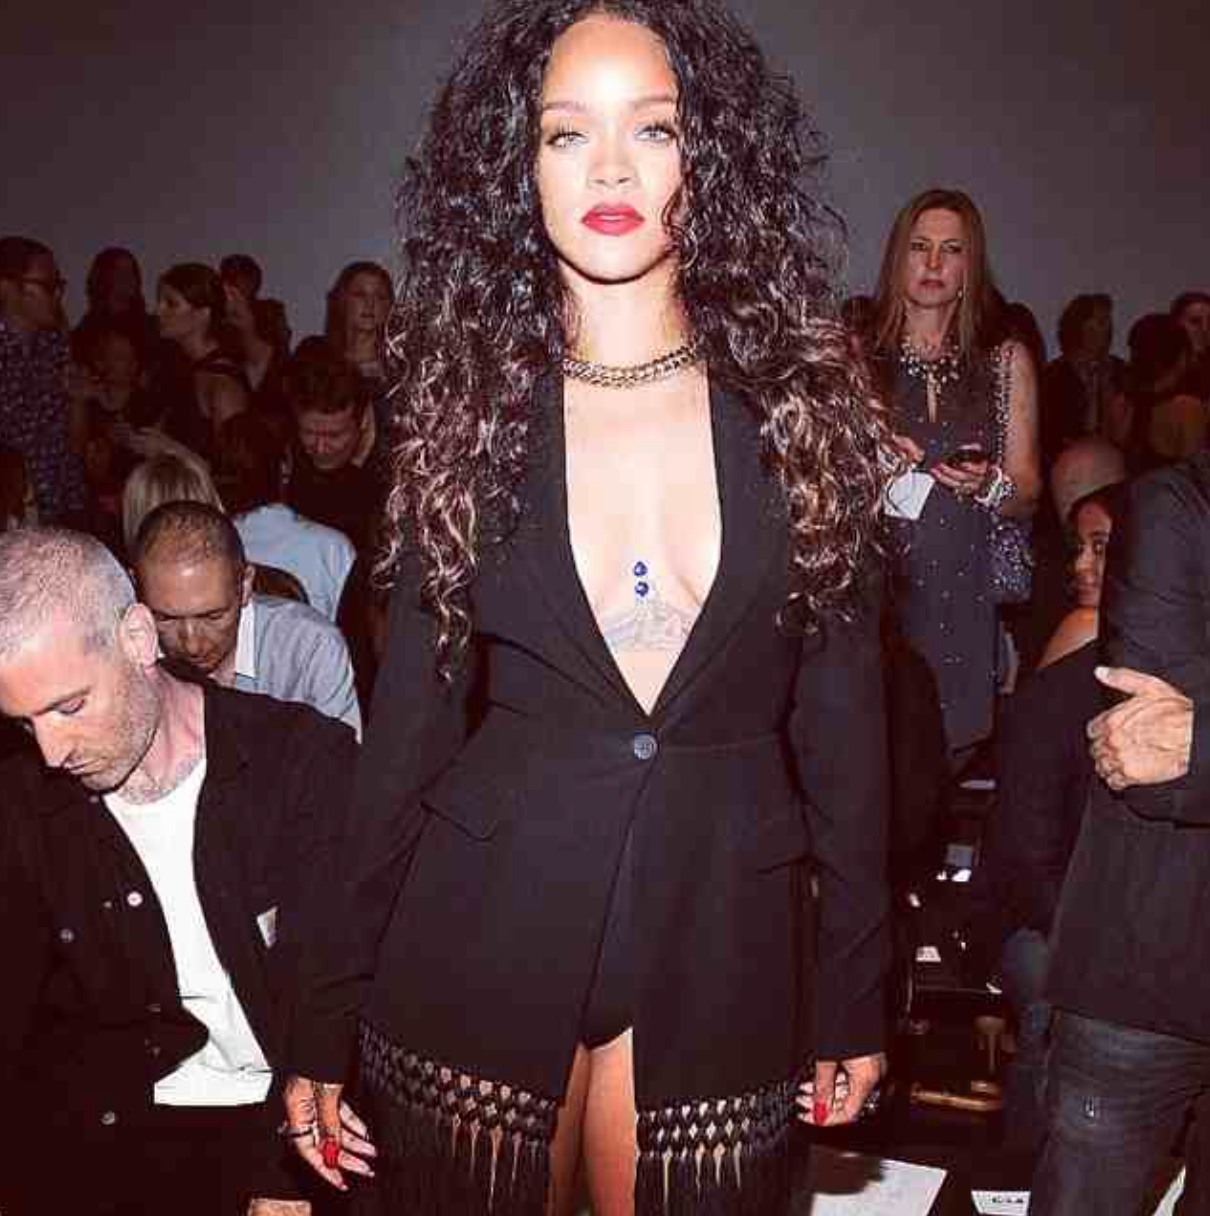 Rihanna looked AMAZING on the FROW at Altuzarra with her stylist Mel Ottenberg. She rocked an Altuzarra blazer and a red lip- we're obsessed! #LOOKatNYFW #NYFW #mbfw #SS15 #Rihanna